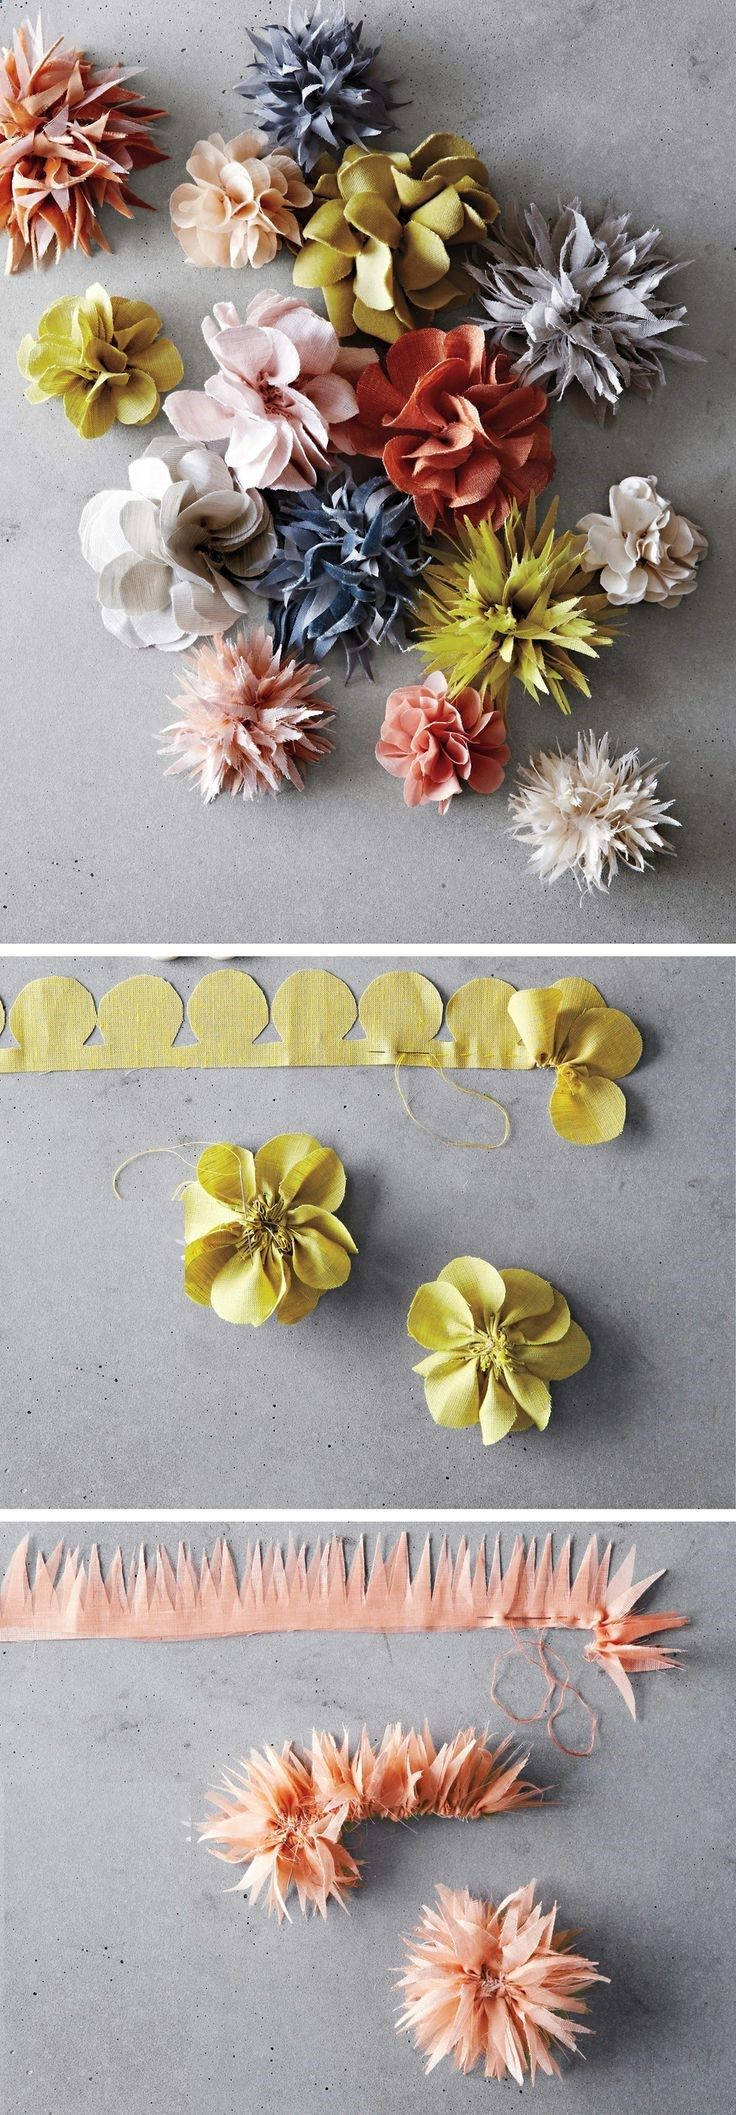 13 best basteln images on Pinterest | Flowers, 4th birthday and ...